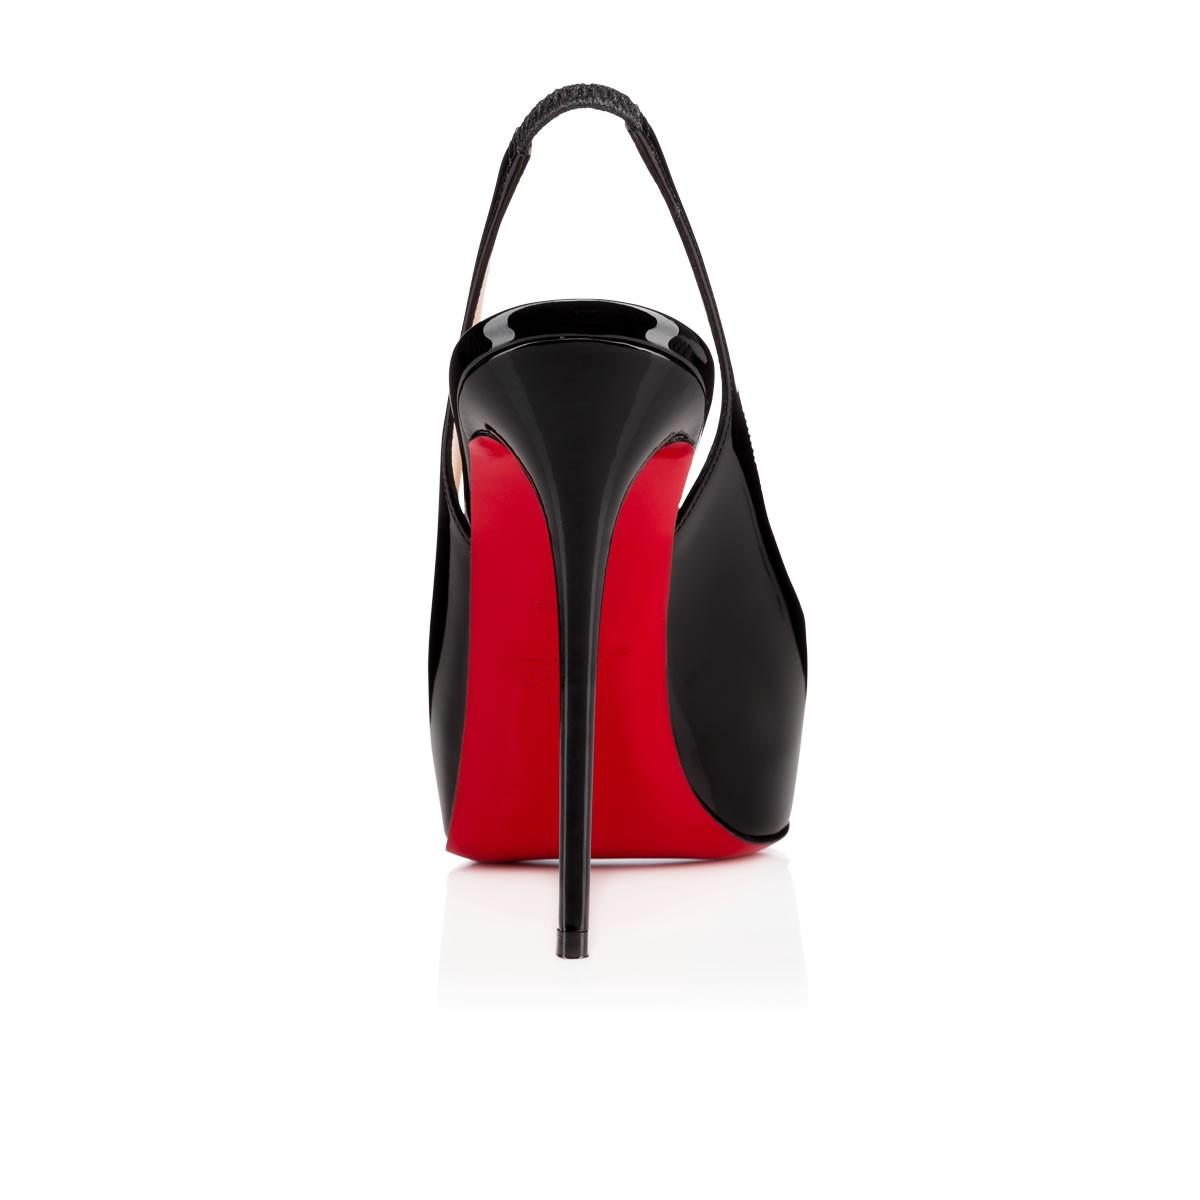 6ea72ce47656 Christian Louboutin Private Number Patent Peep-Toe Red Sole Slingback In  Black